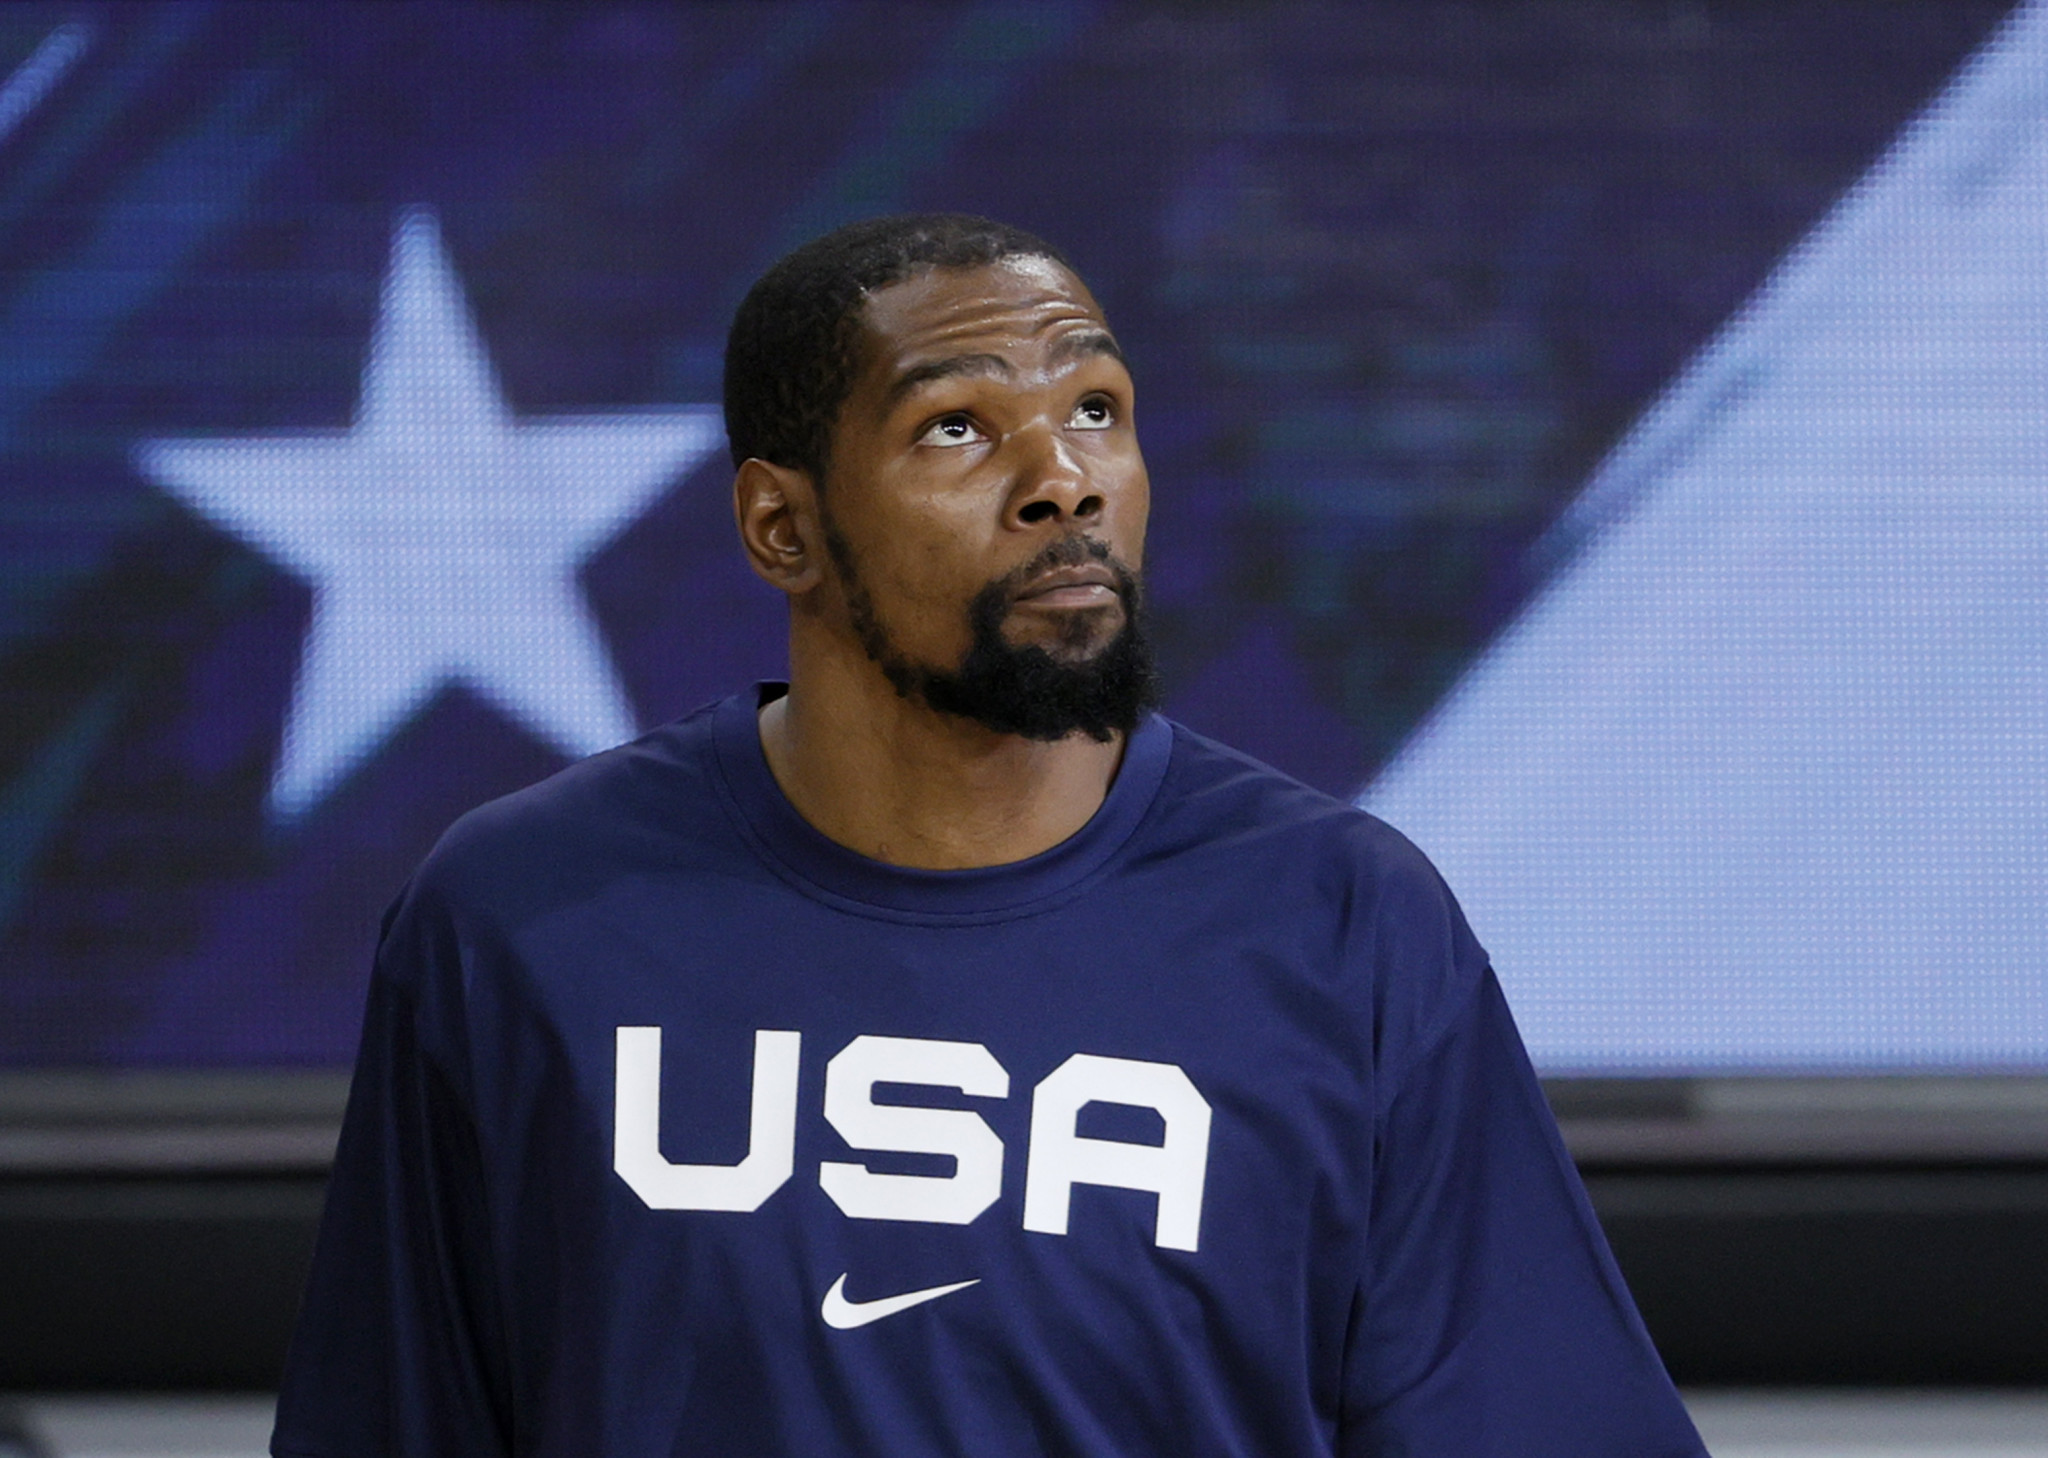 Team USA looking for basketball gold at Tokyo 2020 despite disrupted build-up